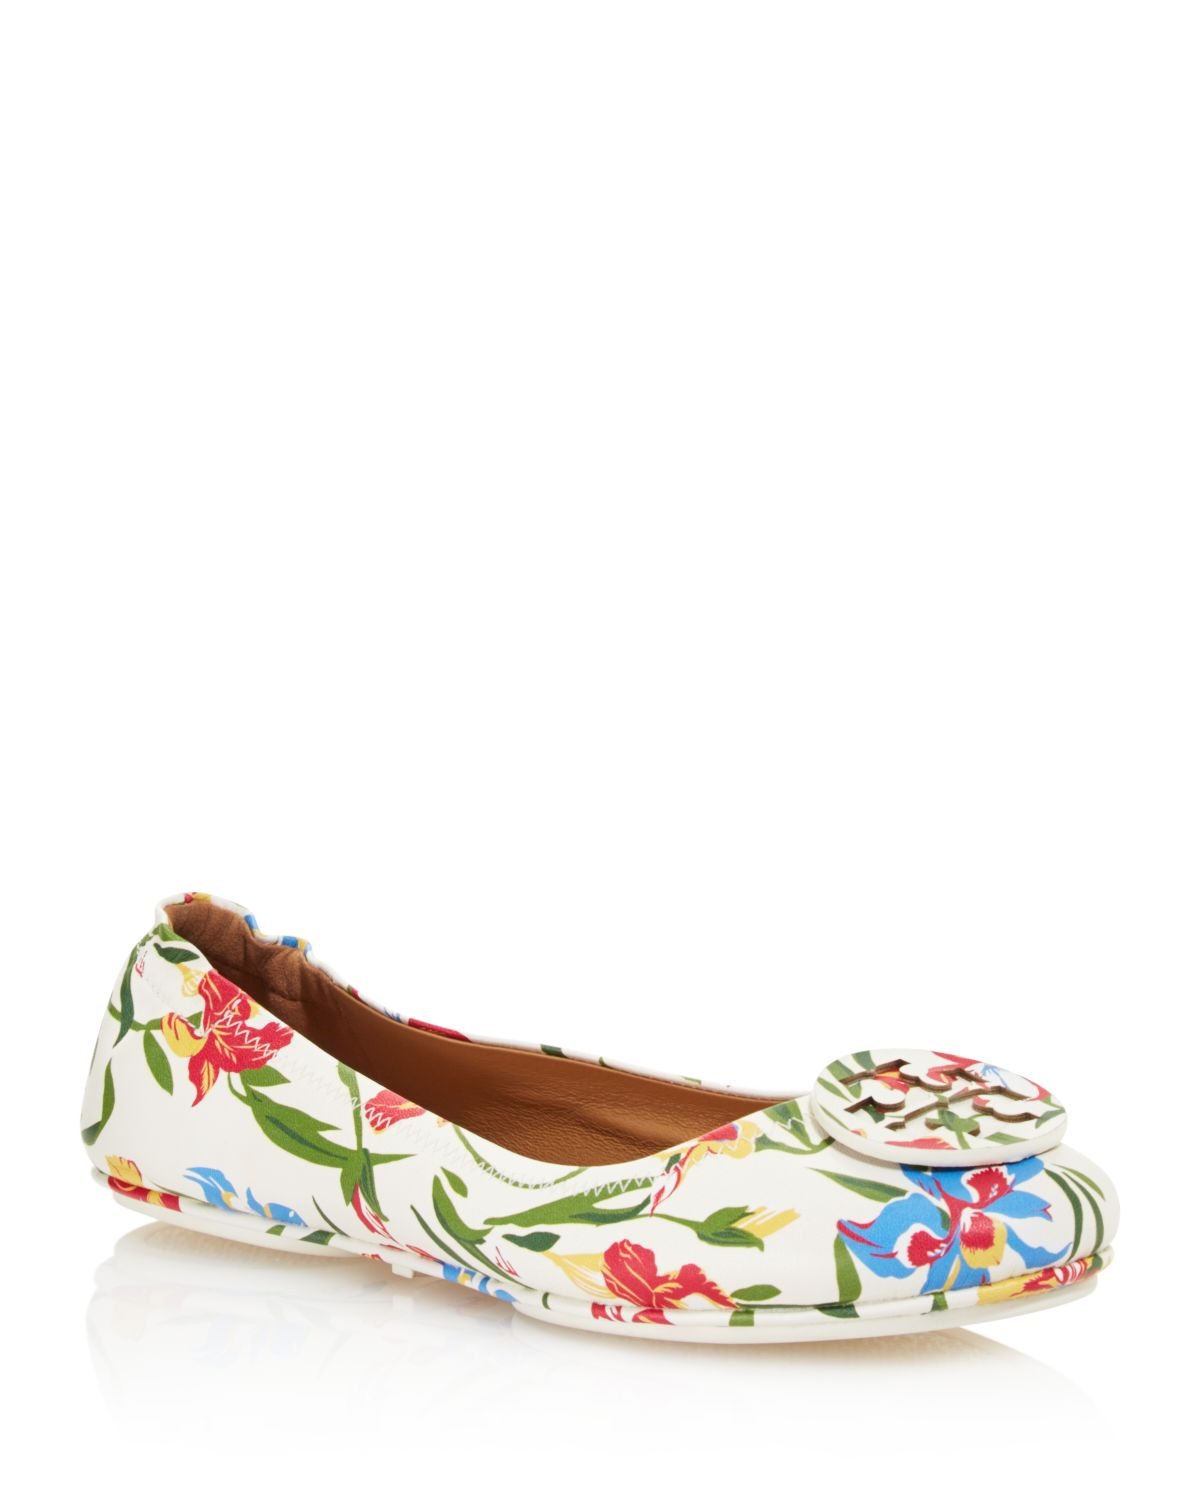 Tory Burch Women's Minnie Printed Leather Travel Ballet Flats